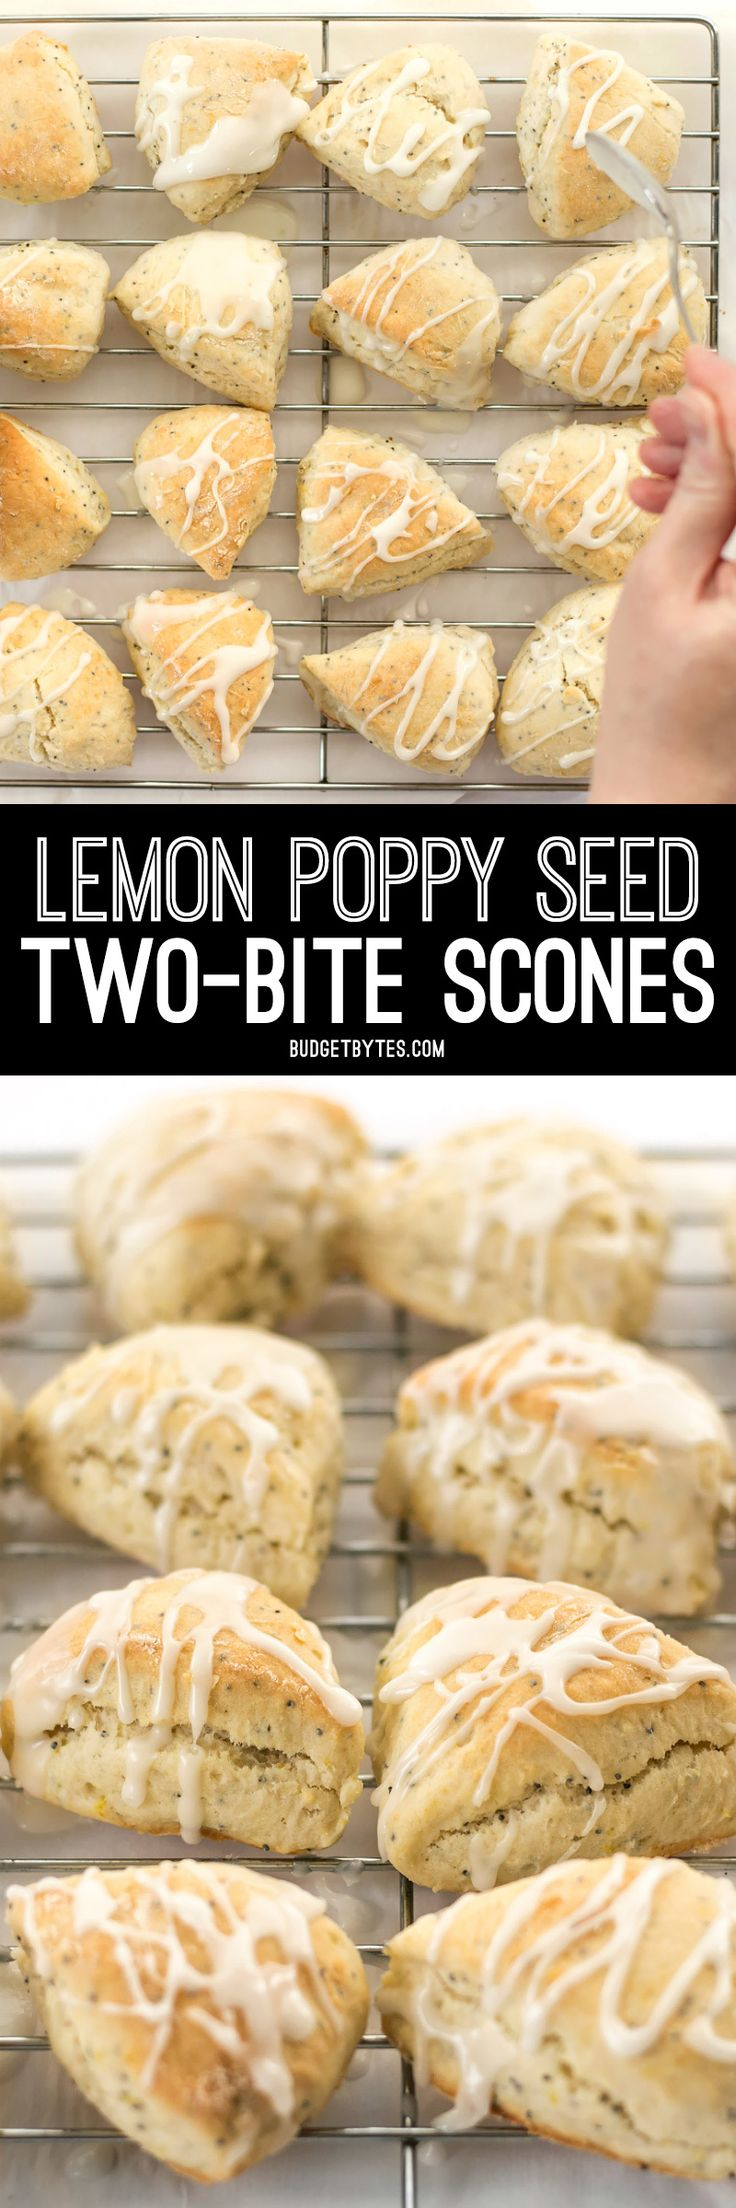 These cute little lemon poppy seed two-bite scones are soft and sweet with a deliciously tart lemon glaze. You won't be able to have just one! @budgetbytes